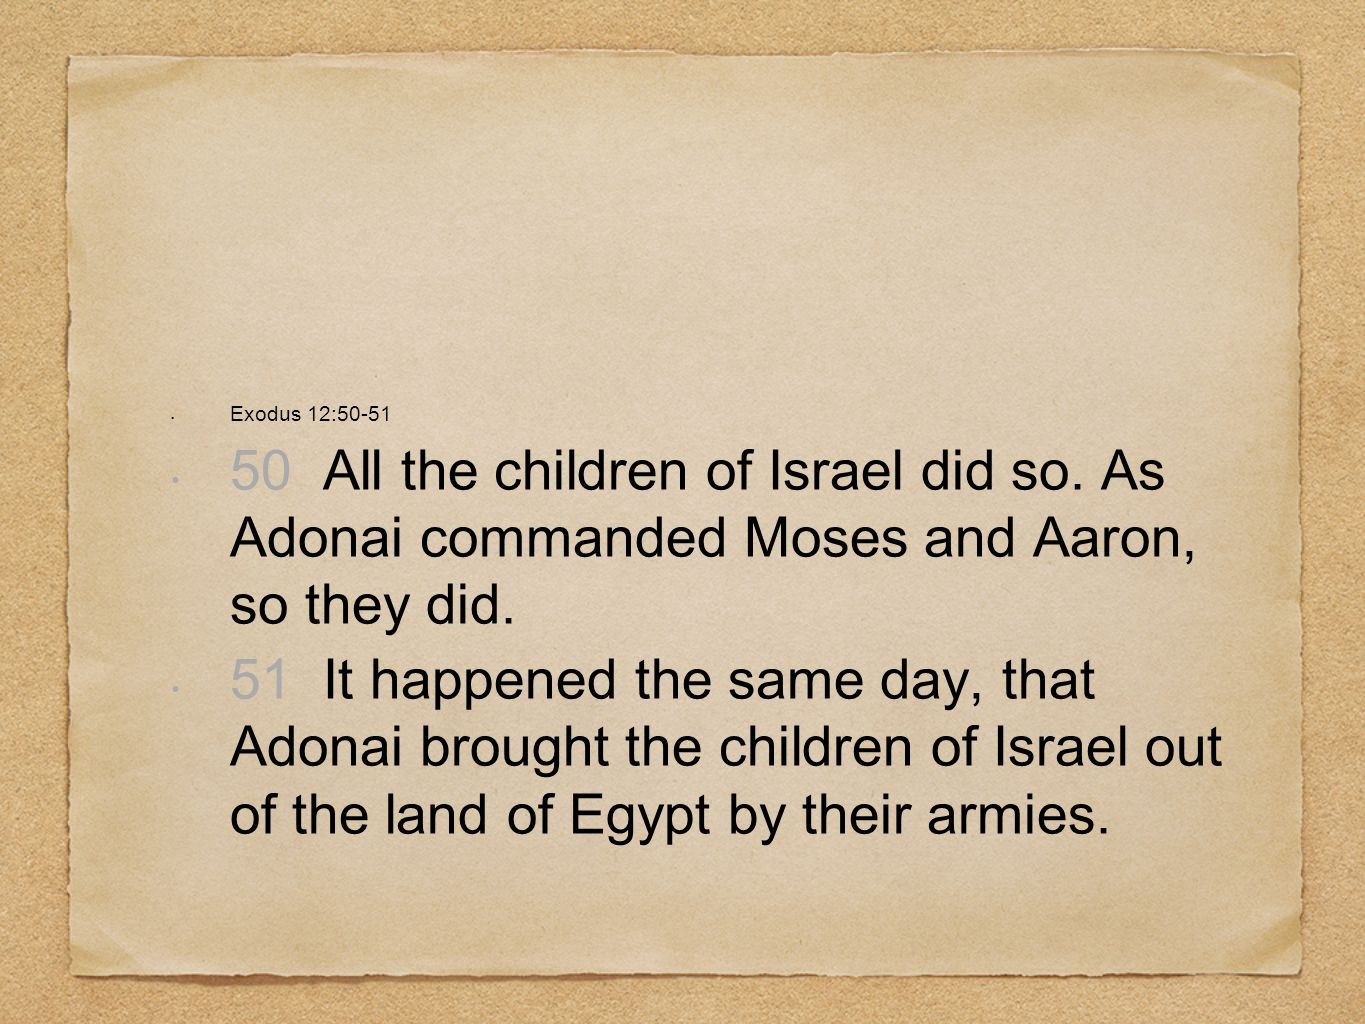 Exodus 12: All the children of Israel did so. As Adonai commanded Moses and Aaron, so they did.